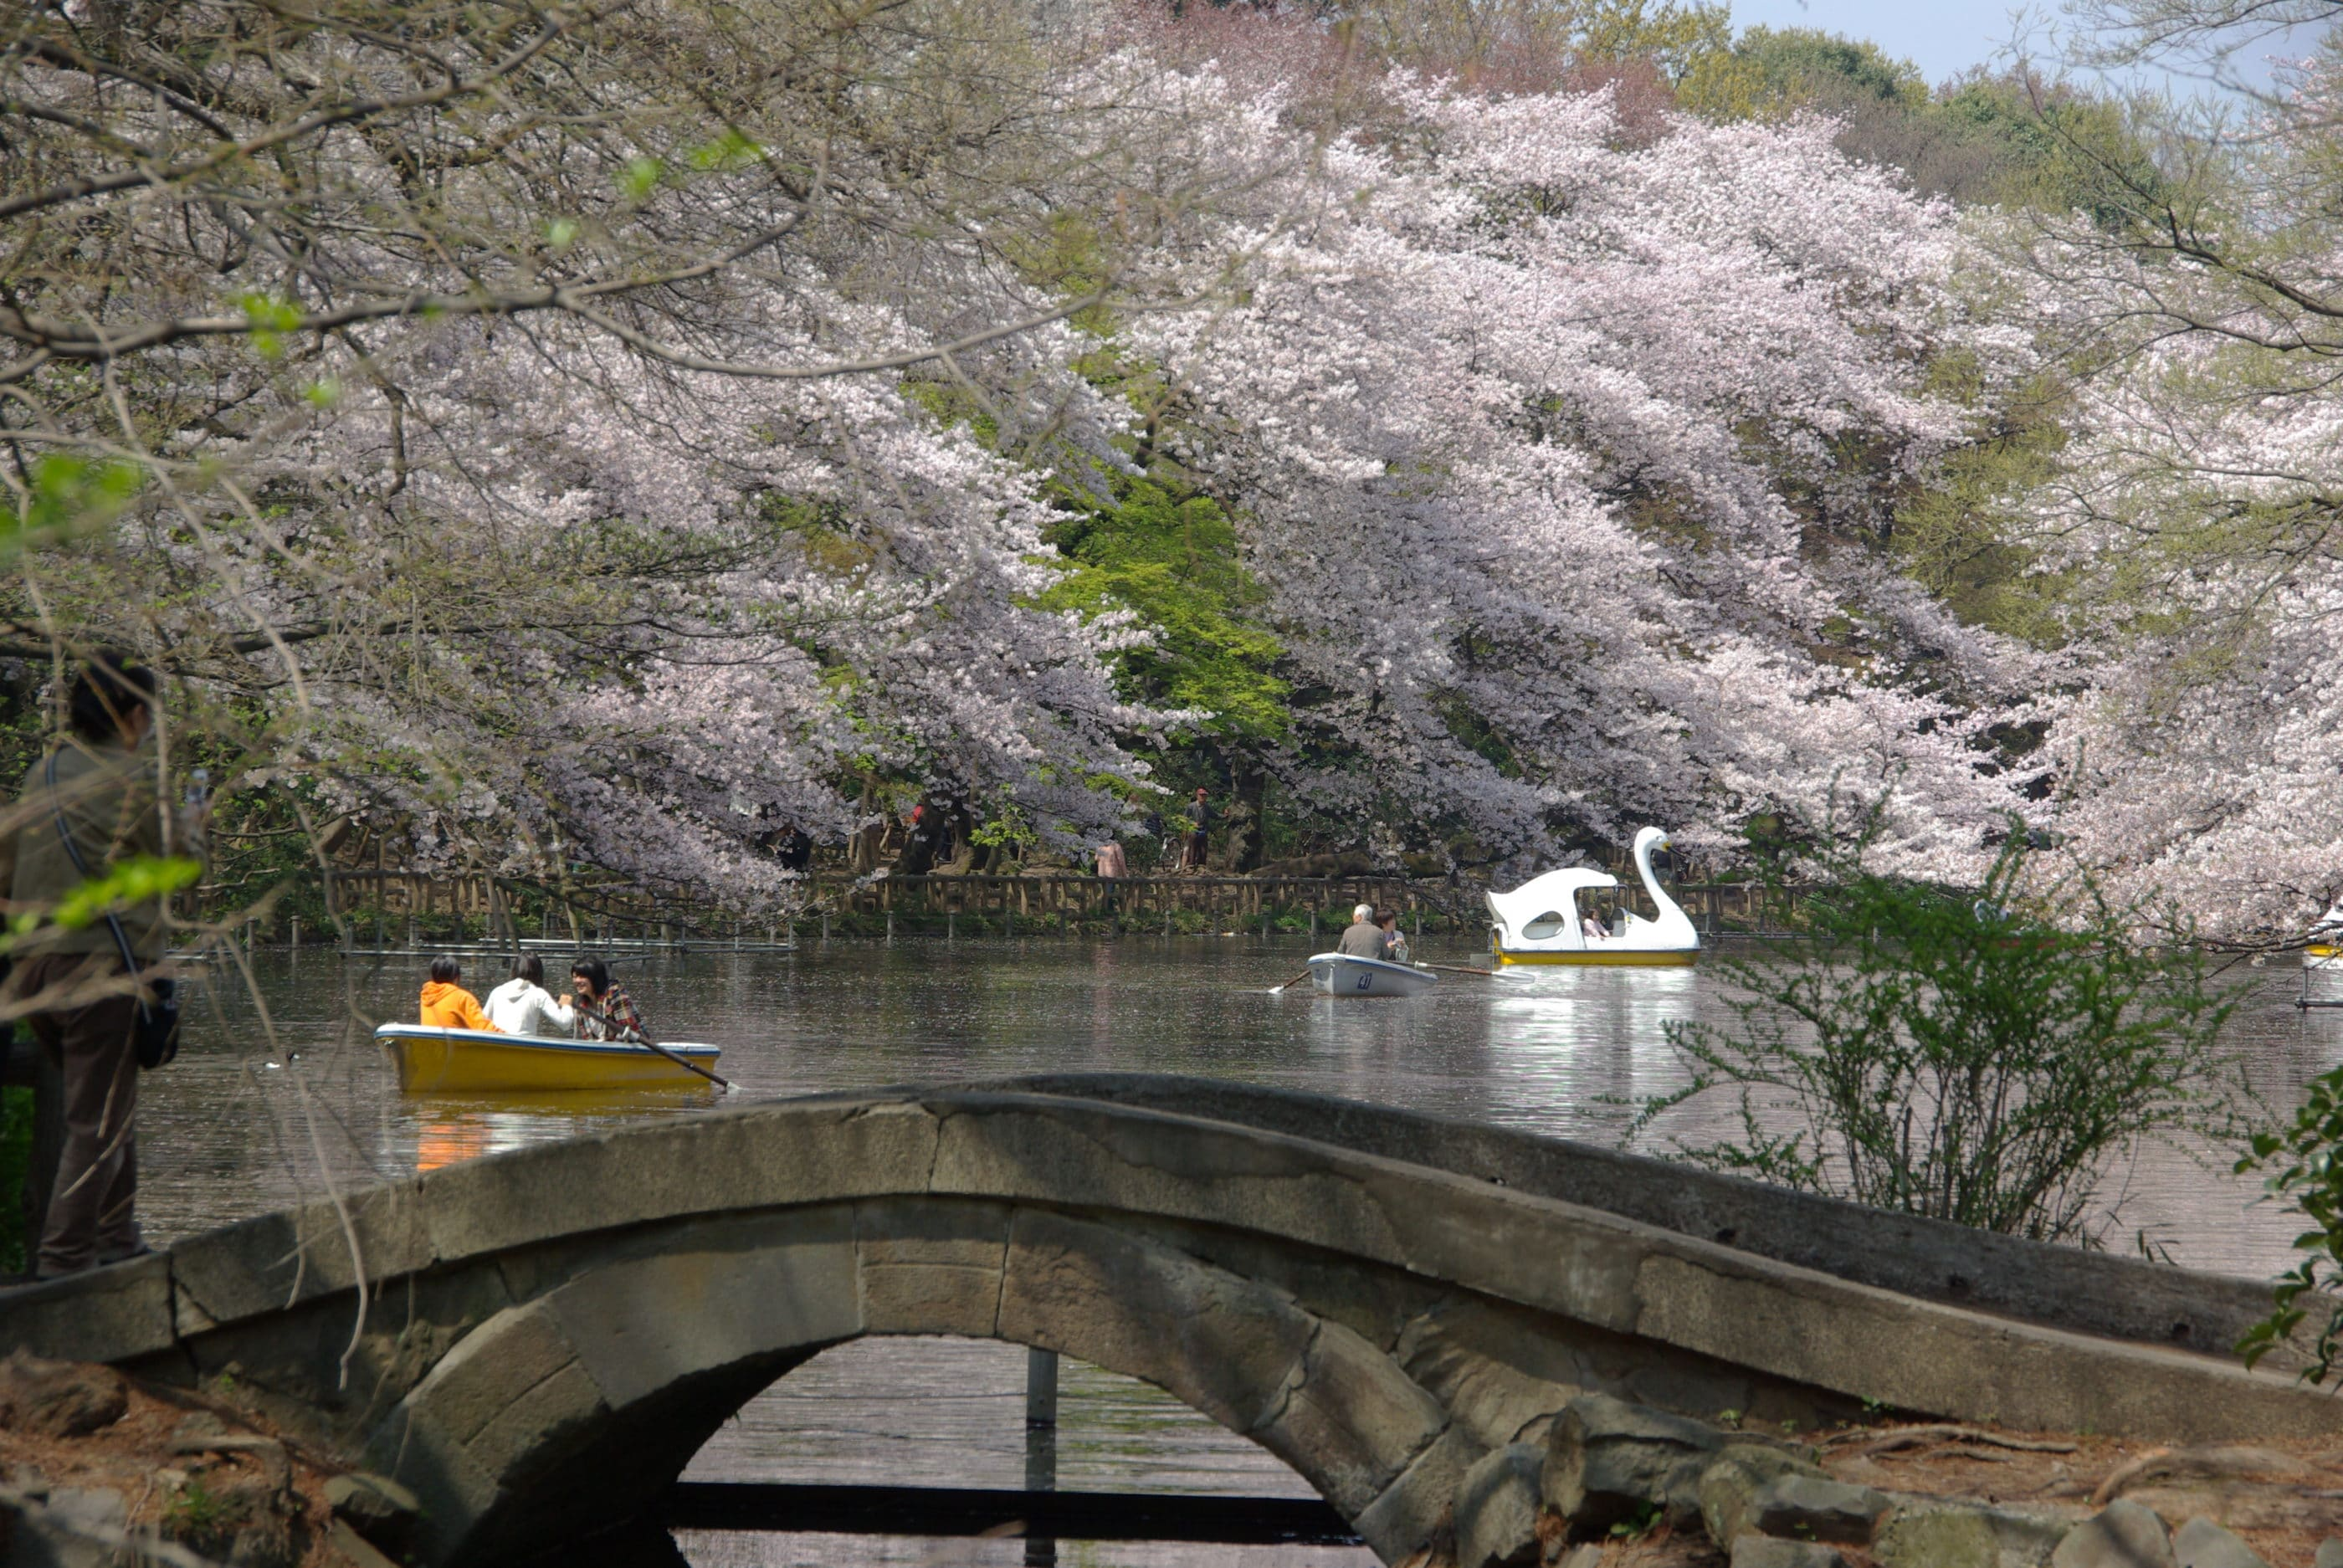 Swan boat and row boat gliding on the lake with a backdrop of cherry blossoms at Inokashira Park in Tokyo.